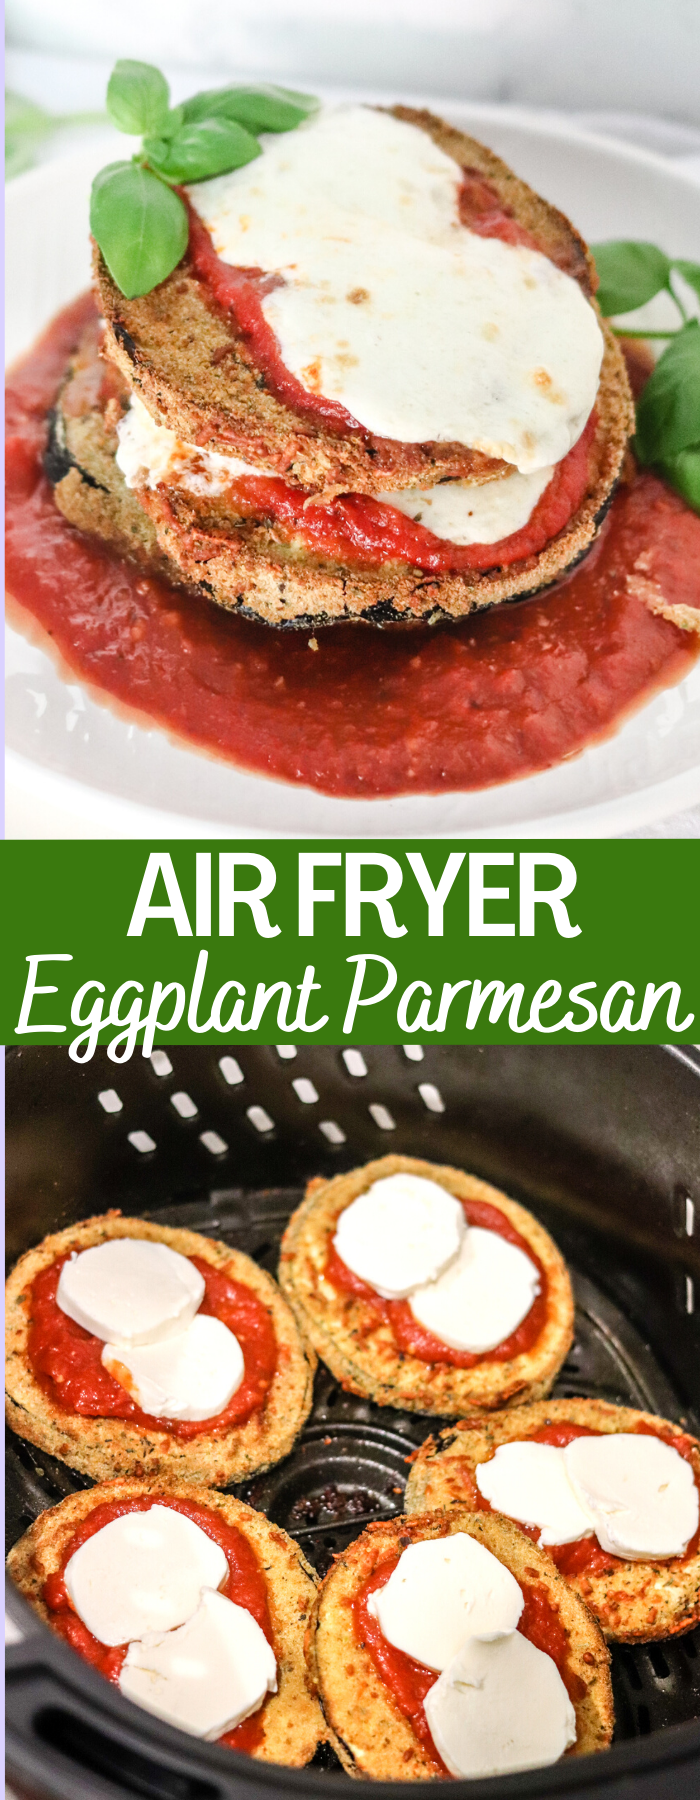 Making Eggplant Parmesan has never been easier than with the Air Fryer! Crispy on the outside and creamy on the inside, even the biggest meat eater will love this meatless meal!